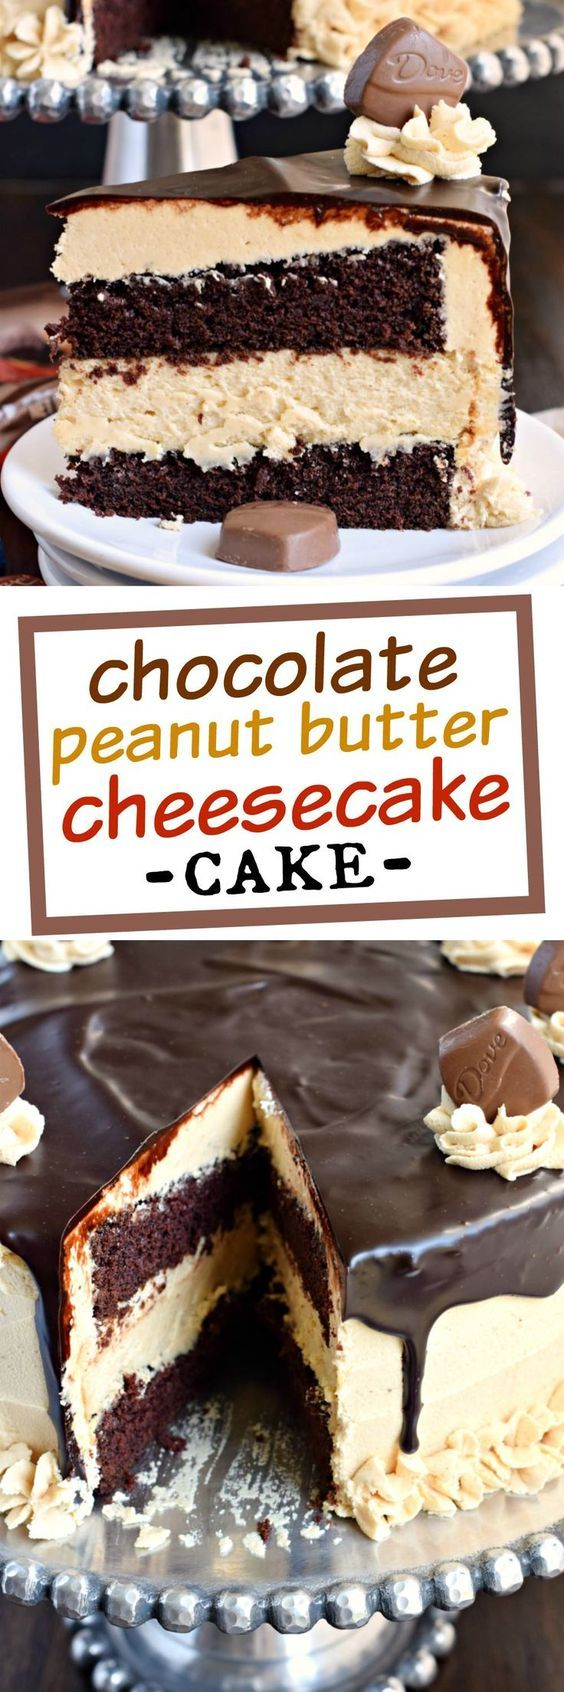 This stunning Chocolate Peanut Butter Cheesecake Cake has layers of homemade chocolate cake and peanut butter cheesecake. Topped with a creamy peanut butter frosting and dark chocolate ganache, this cake is sure to satisfy that sweet tooth! @DoveChocBrand #sponsored